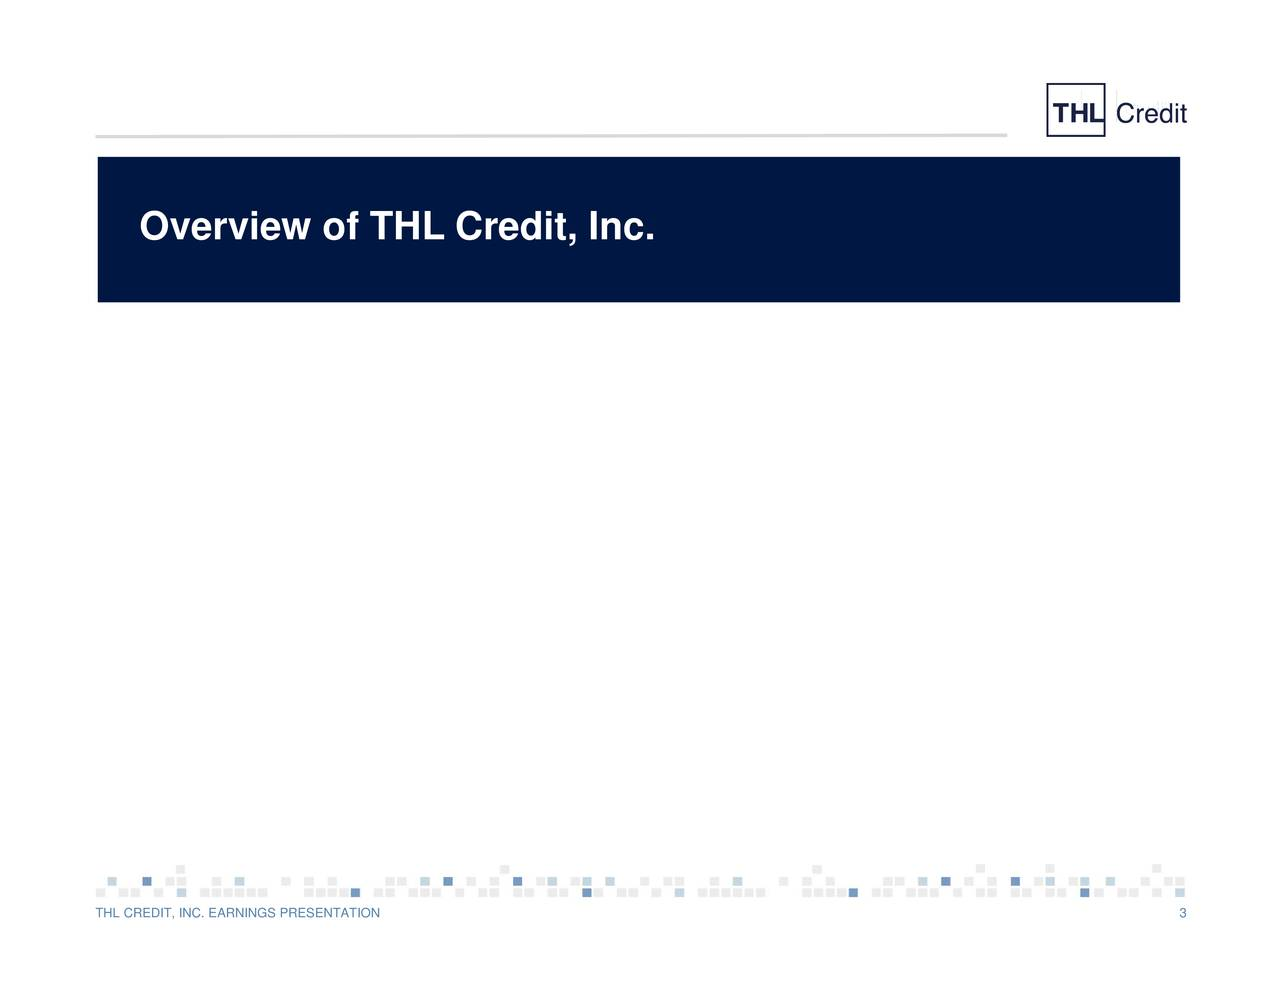 Overview of THL Credit, Inc. THL CREDIT, INC. EARNINGS PRESENTATION